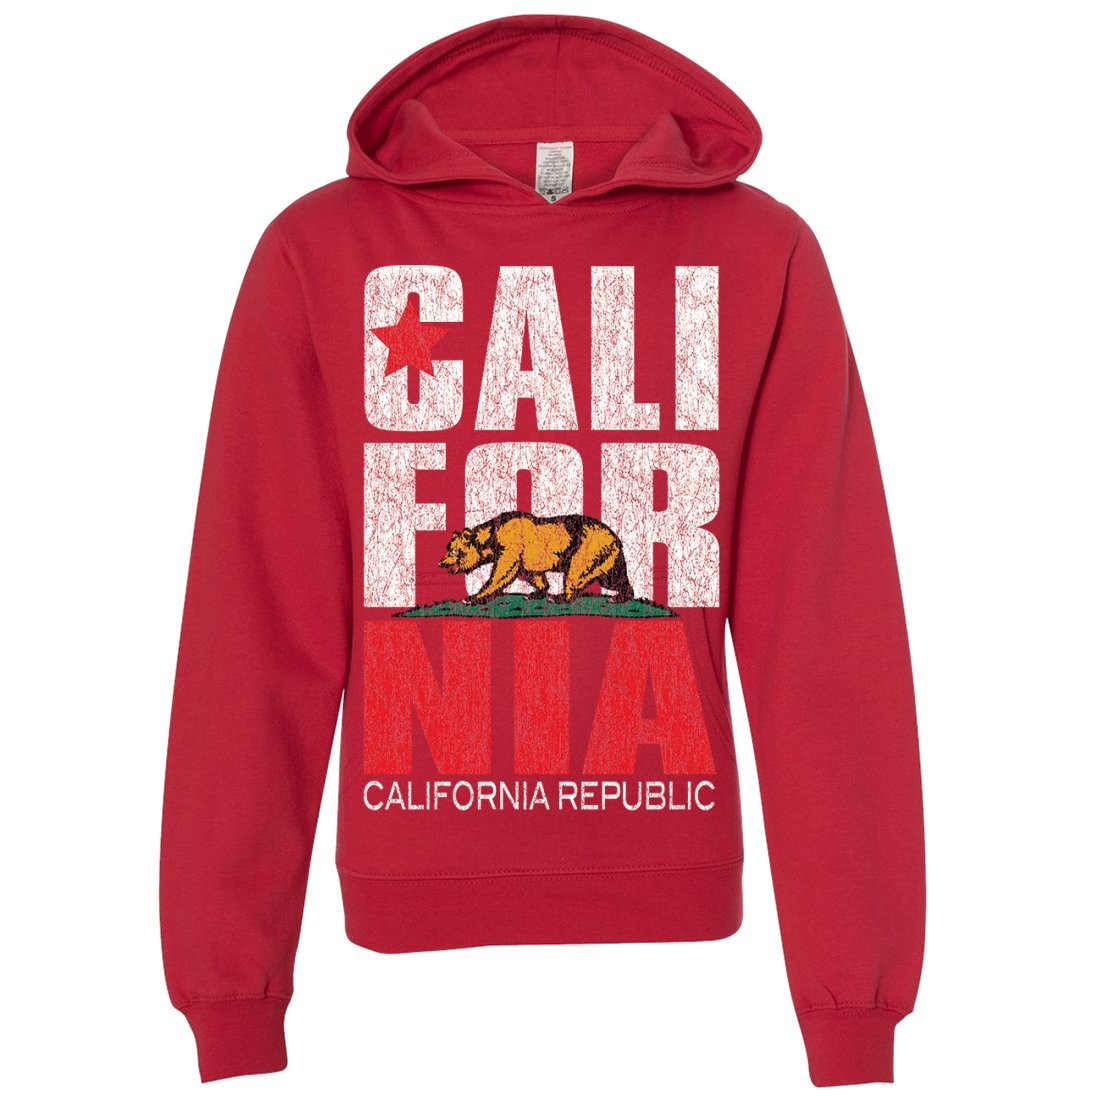 Dolphin Shirt Co California Republic Vintage Retro Youth Sweatshirt Hoodie